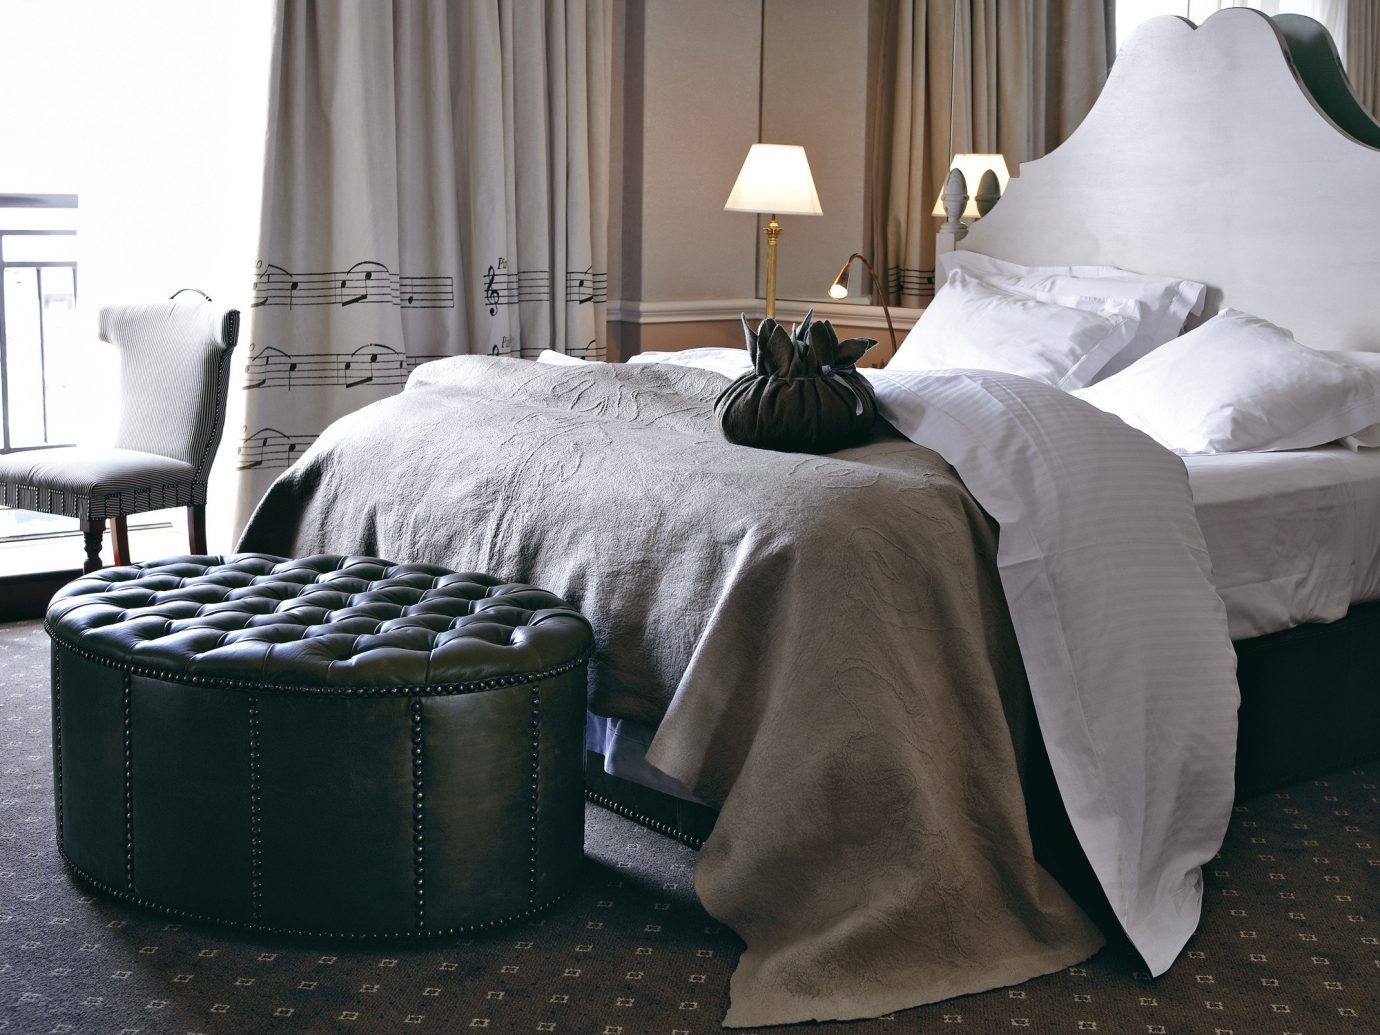 Hotels bed indoor hotel furniture room curtain Bedroom product bed sheet duvet cover textile bed frame studio couch living room table